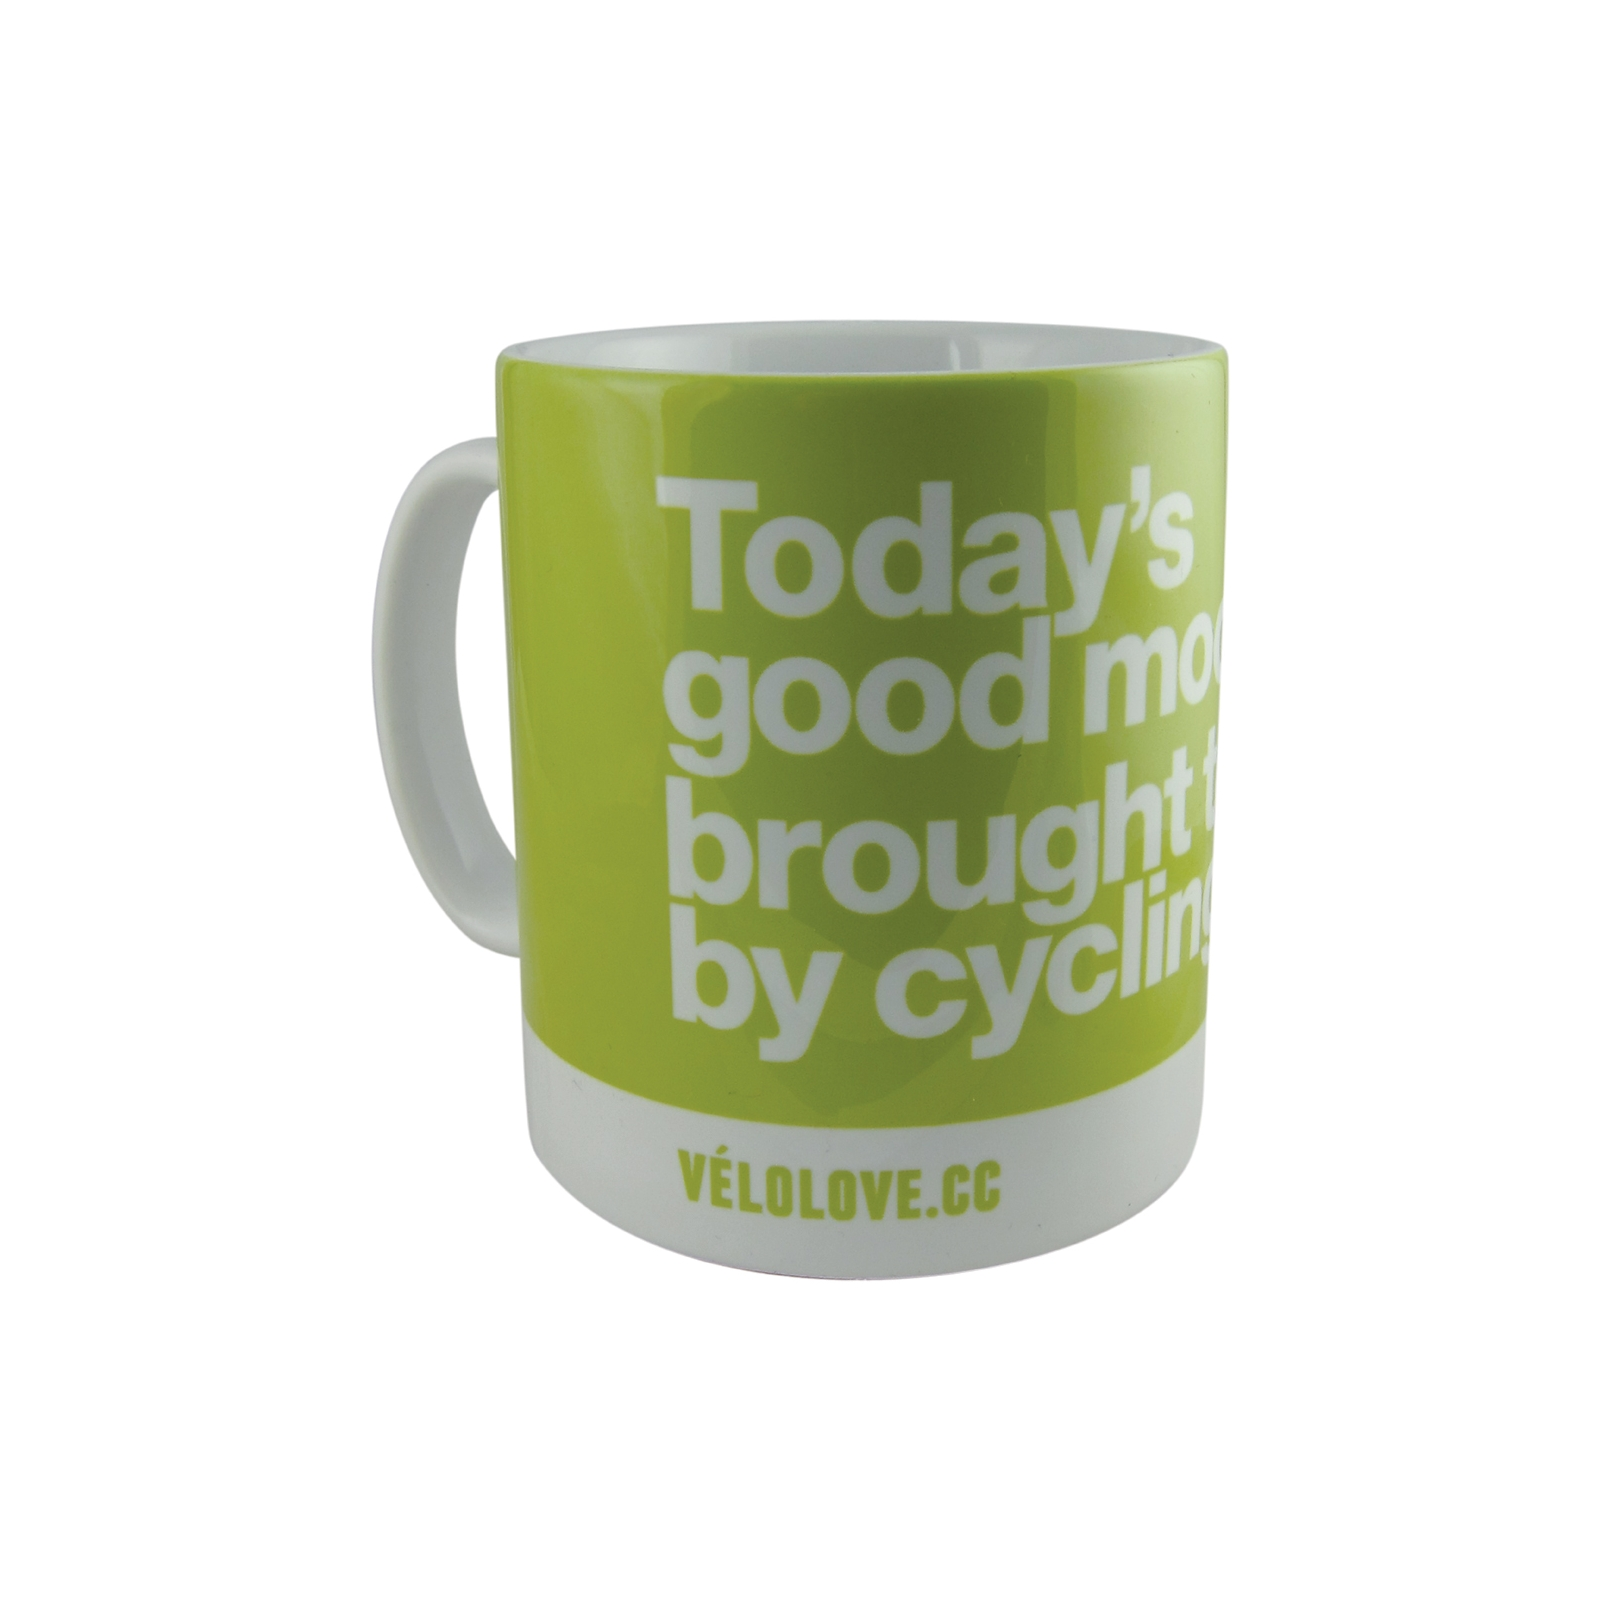 Velolove Today's good mood is brought to you by cycling Mug | Multimedier > Tilbehør